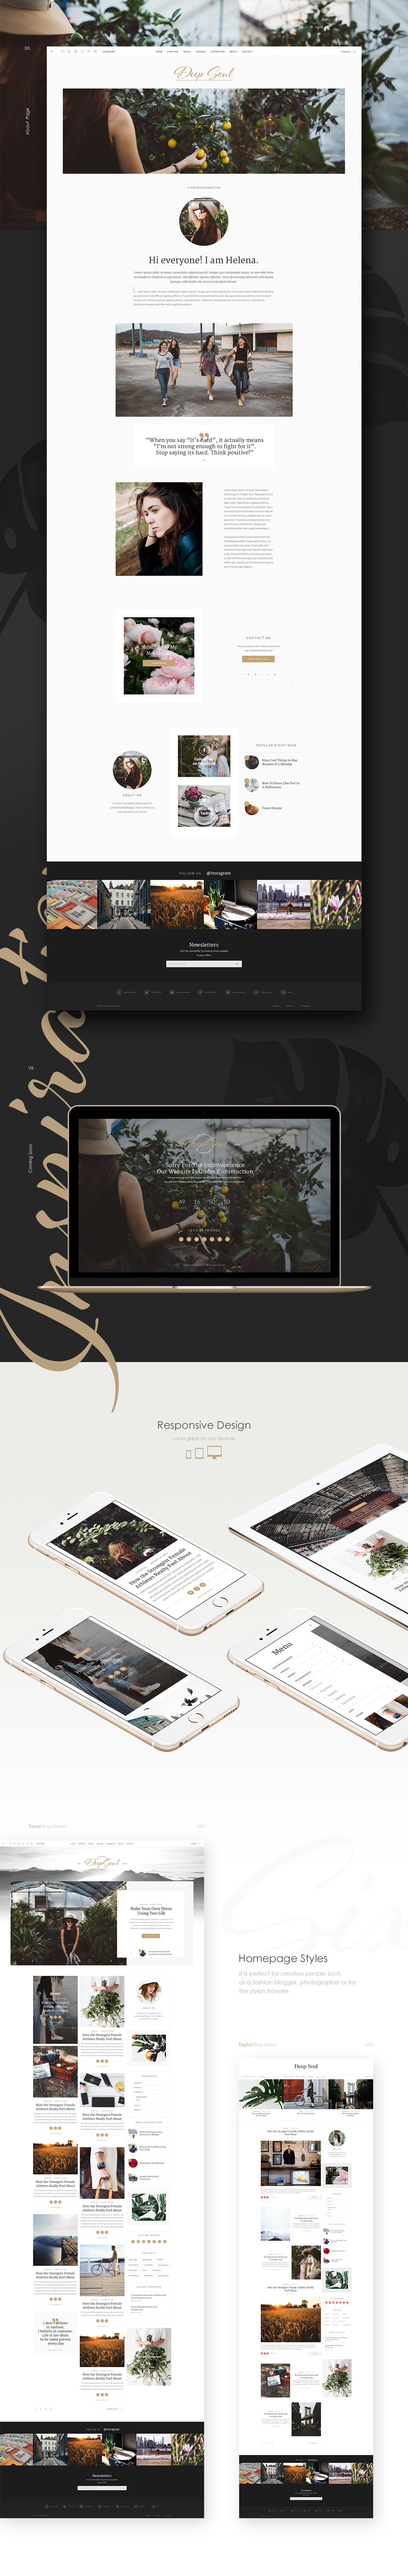 Deep Soul - Lifestyle Blog & Shop WordPress Theme